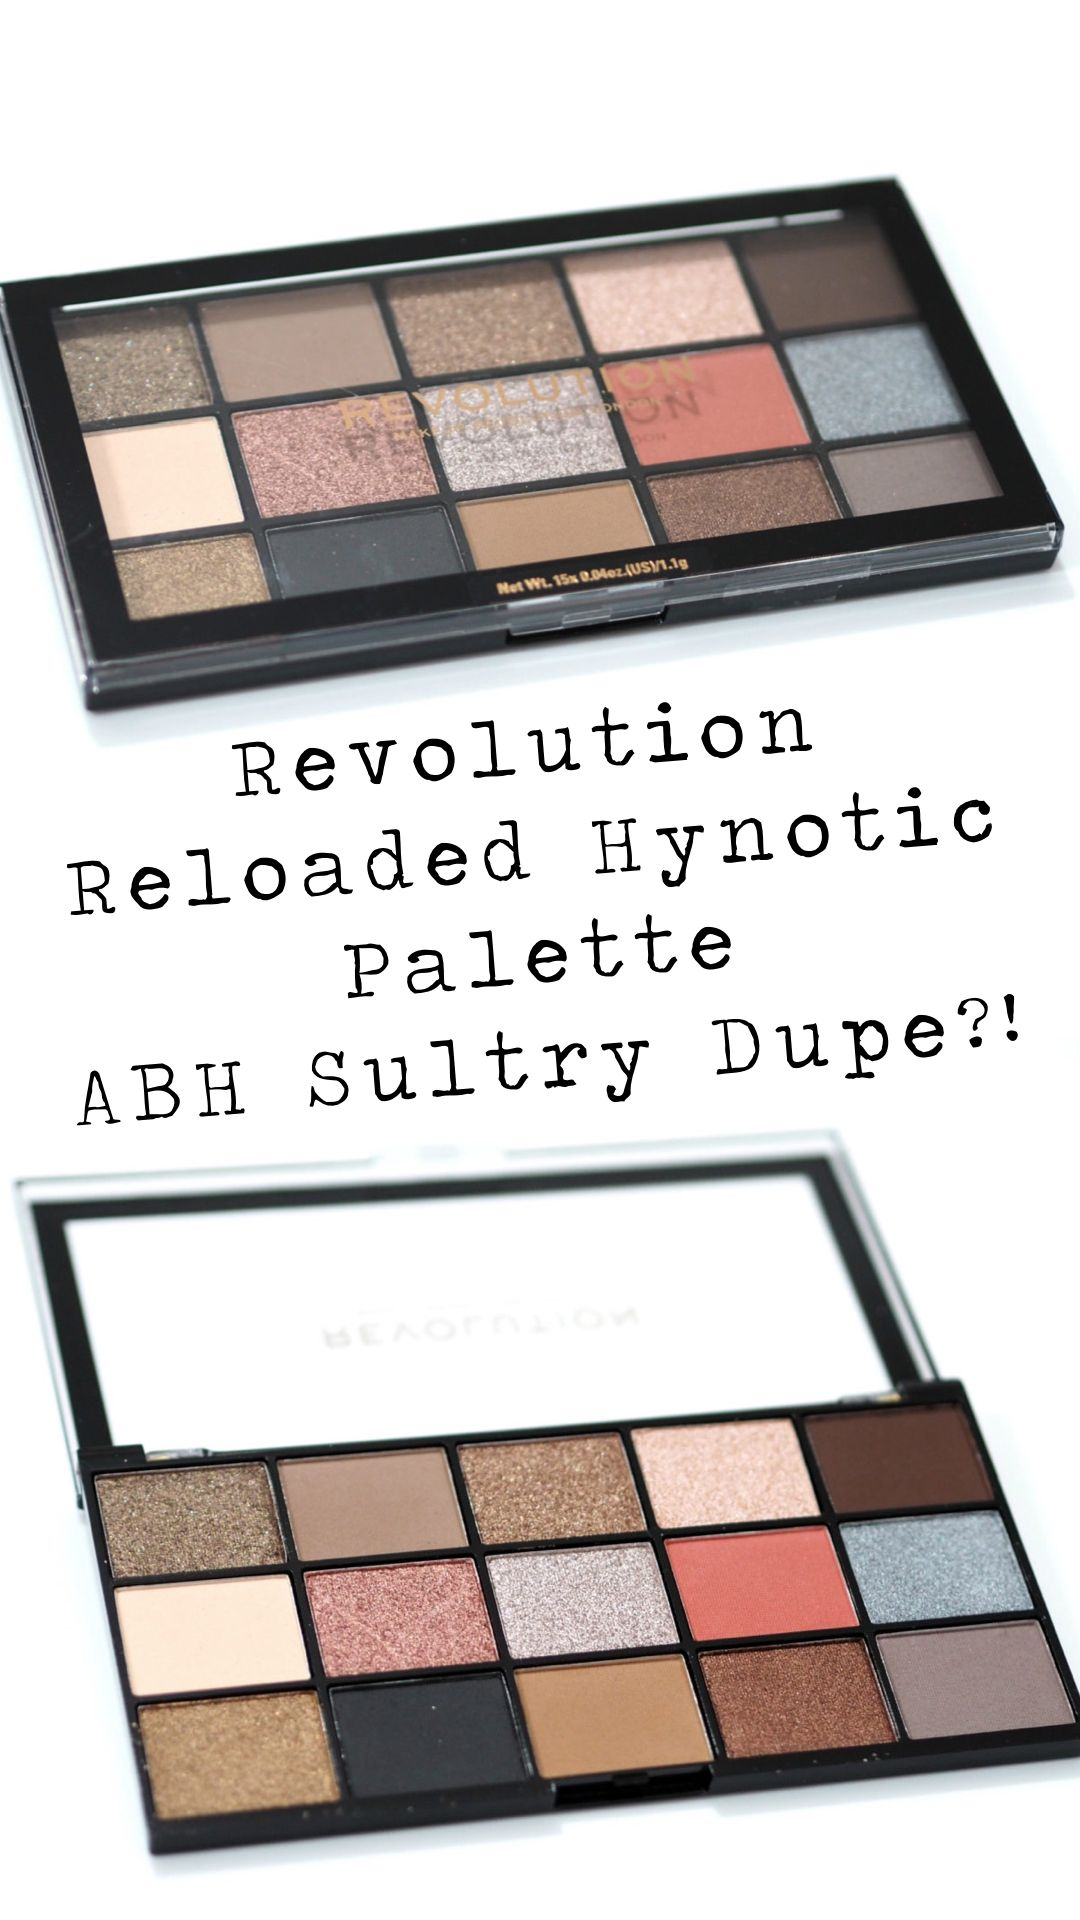 Revolution Reloaded Hypnotic Eyeshadow Palette Review